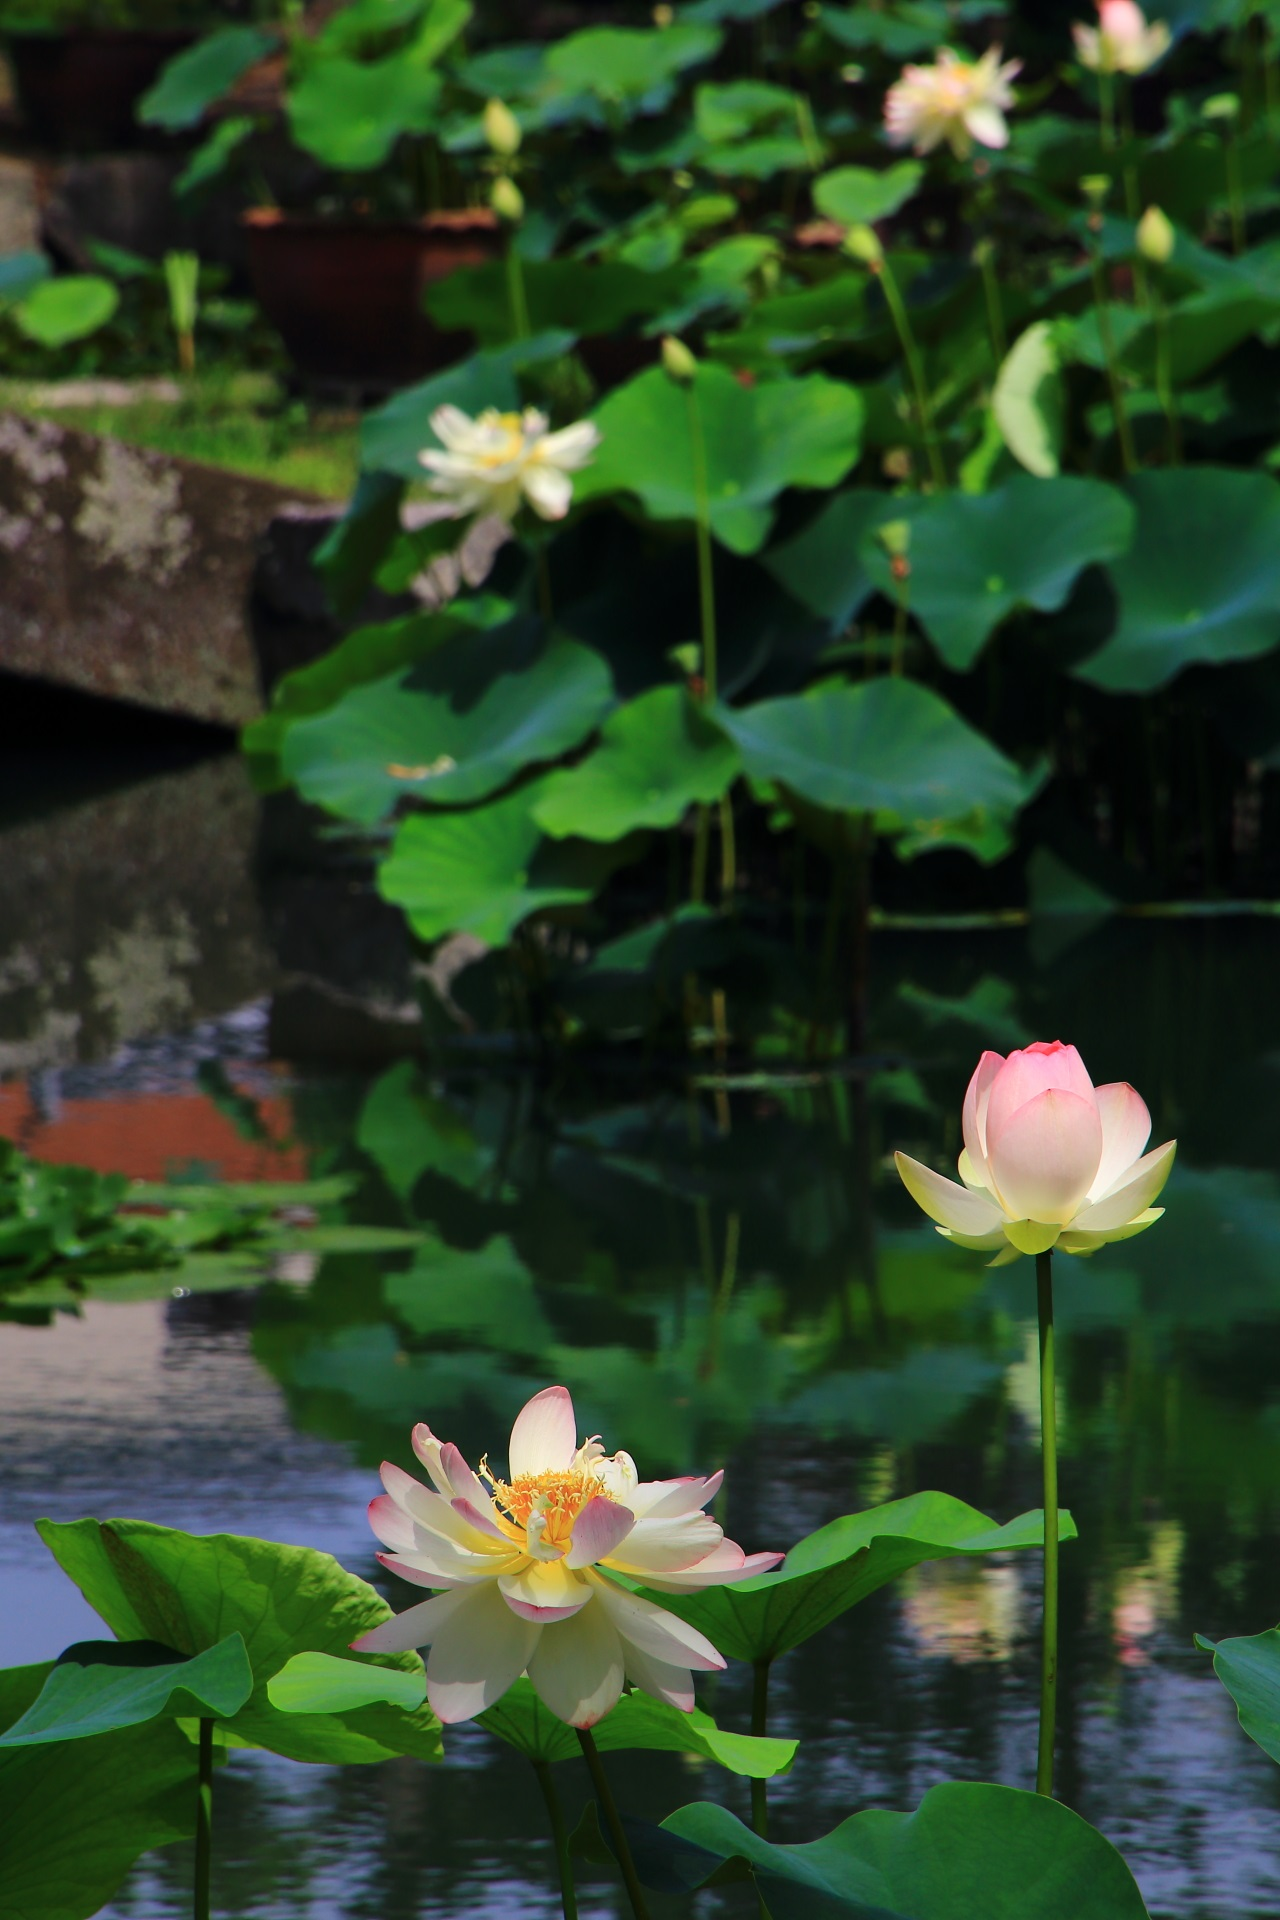 Gorgeous lotus flowers at Shokoku-ji Temple in Kyoto,Japan